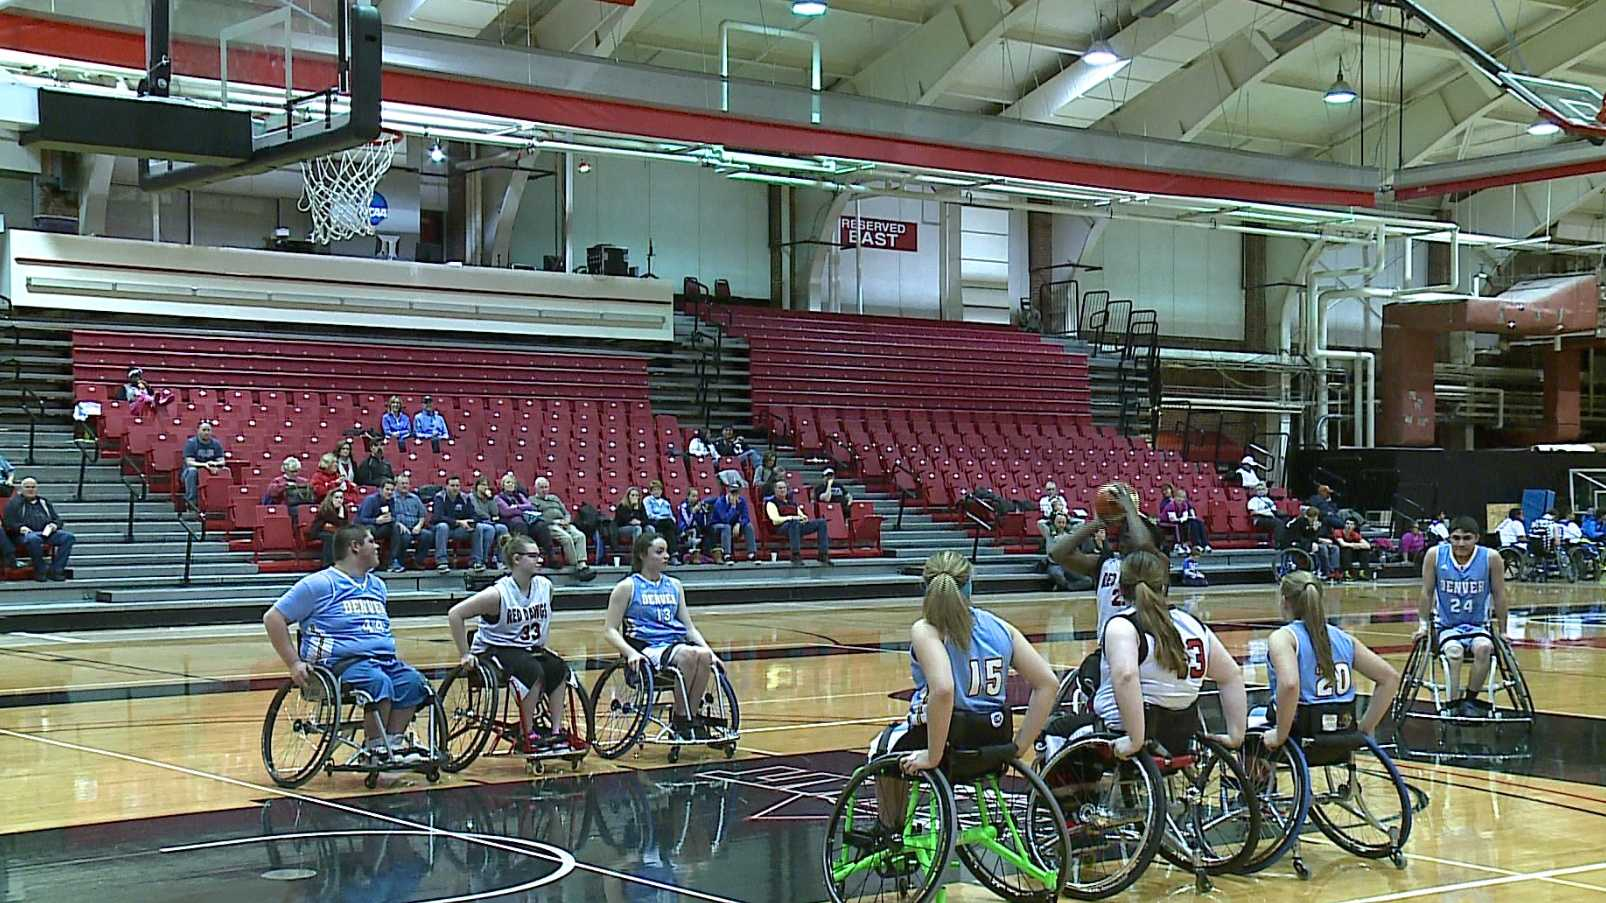 A nationally-recognized wheelchair basketball program is keeping the courts at the University of Nebraska-Omaha courts busy this weekend.